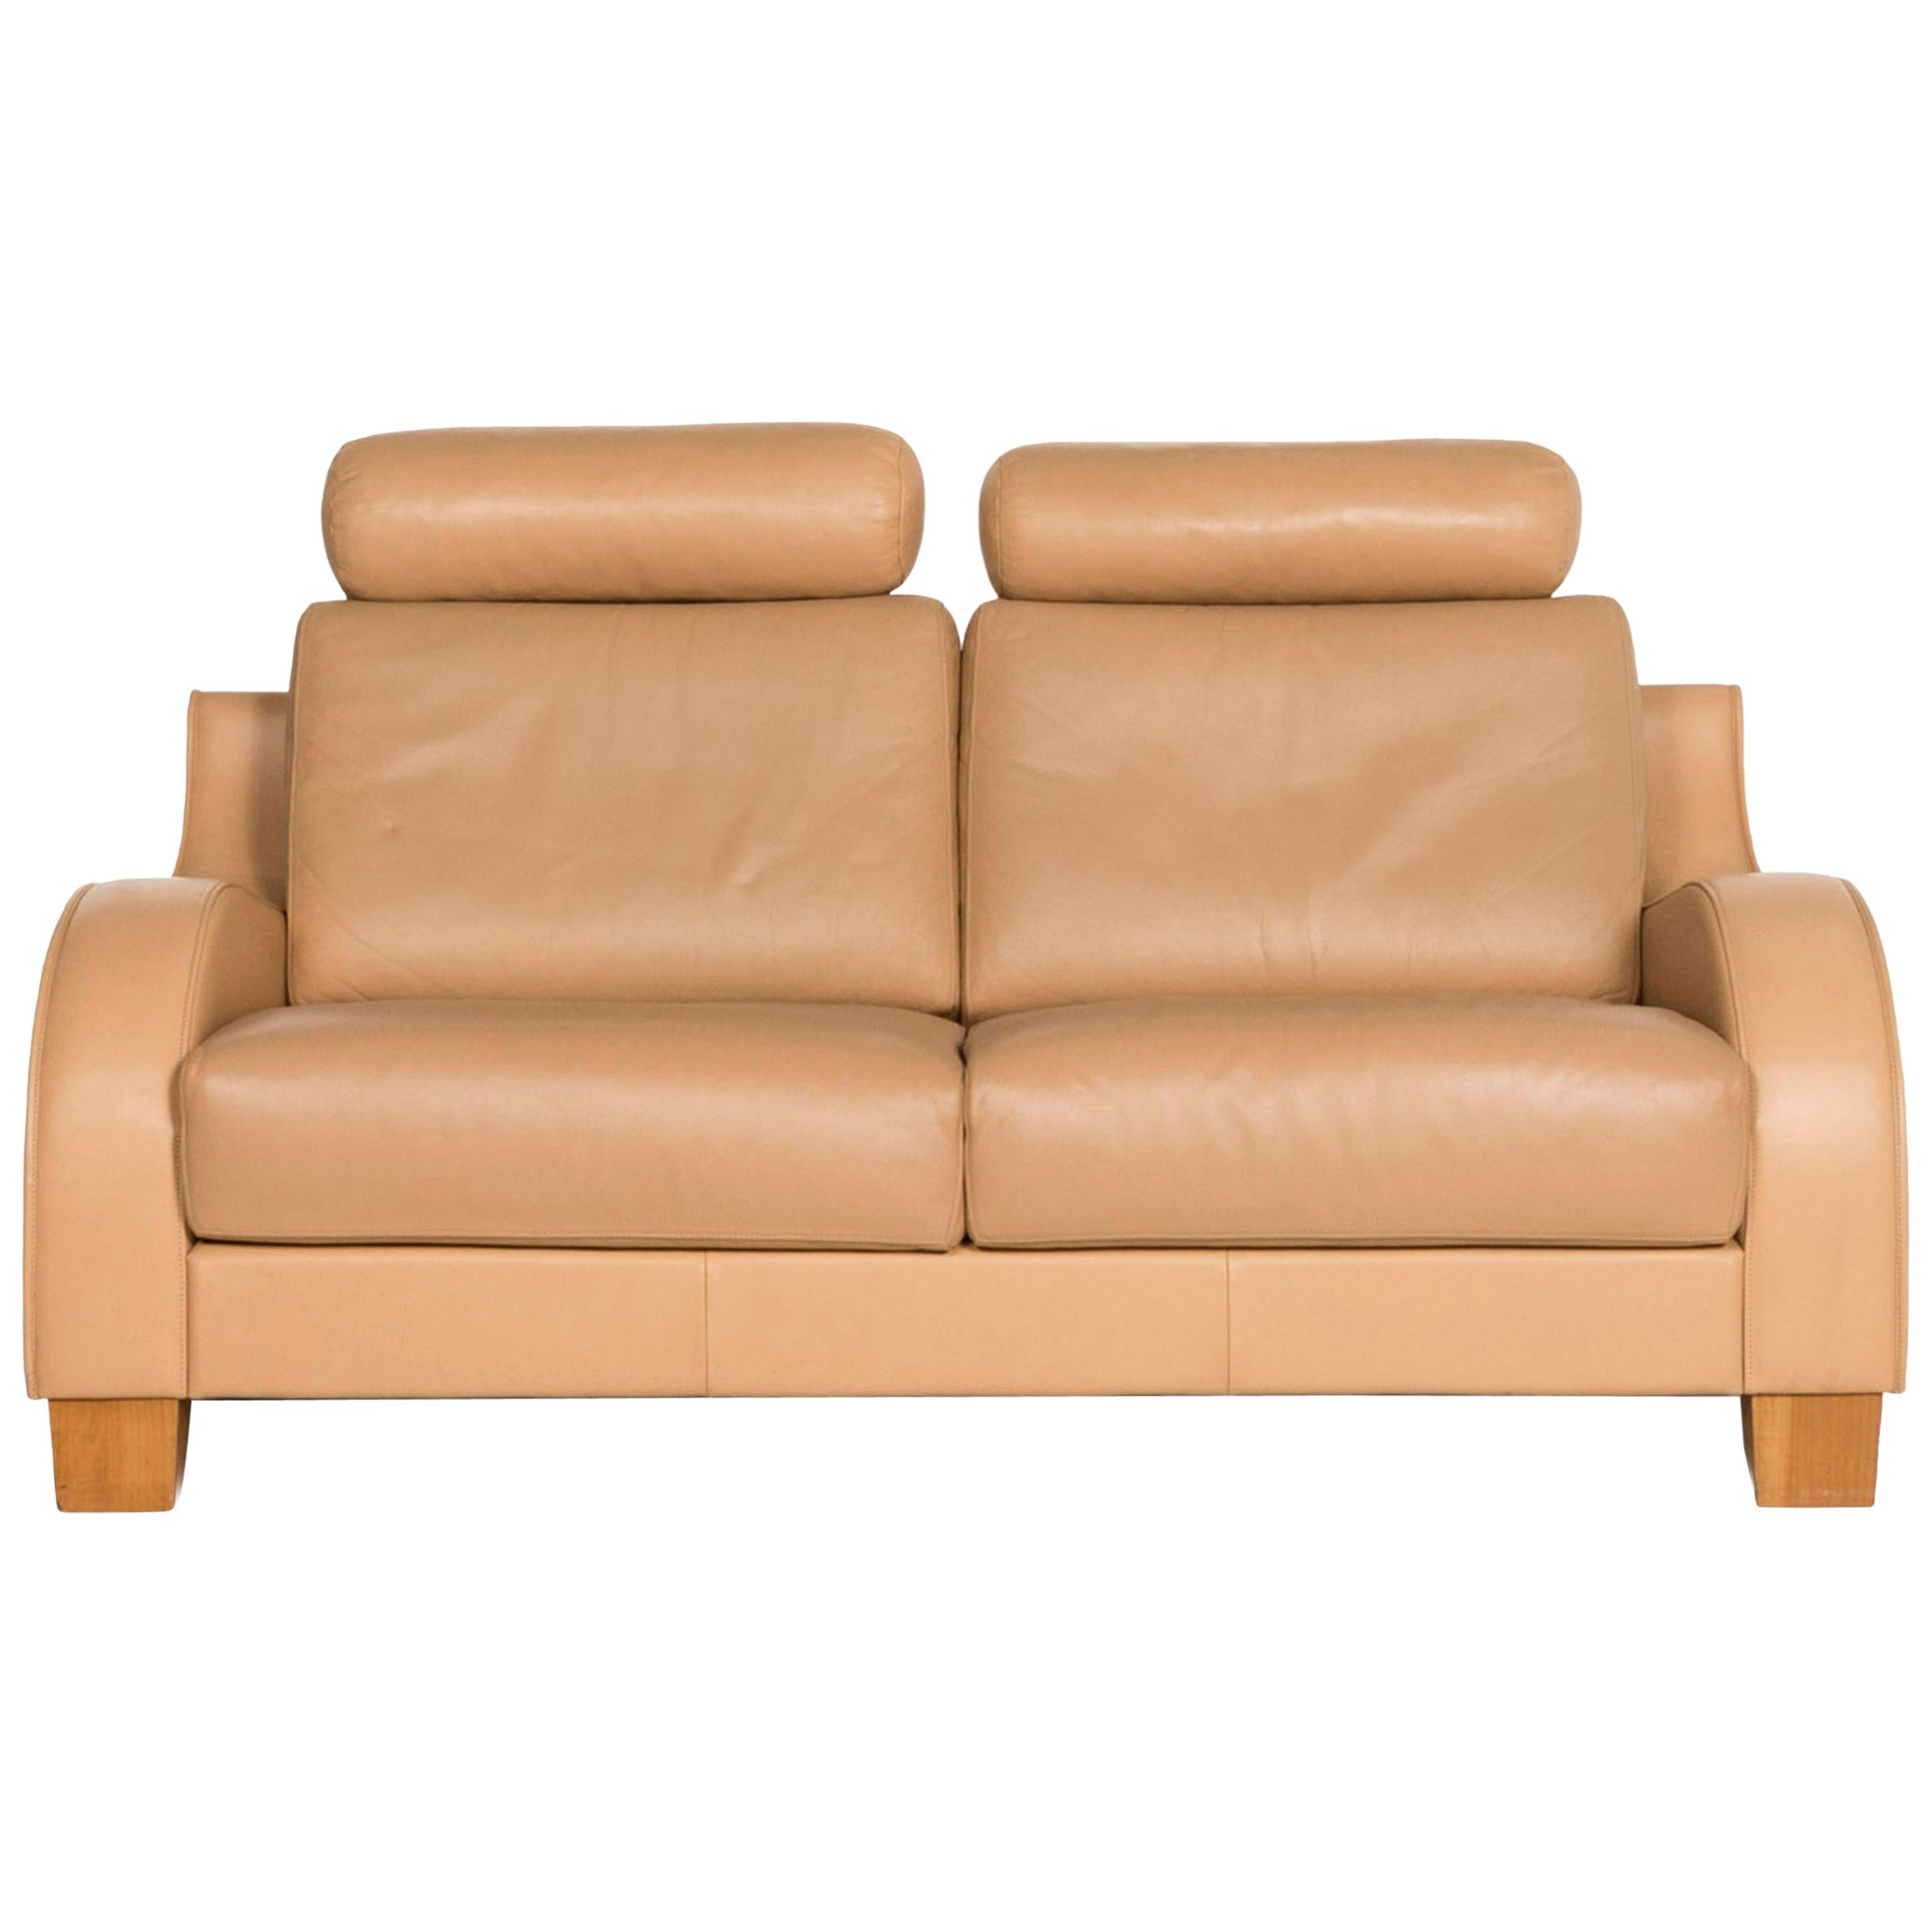 De Sede Leather Sofa Beige Two-Seat Function Couch